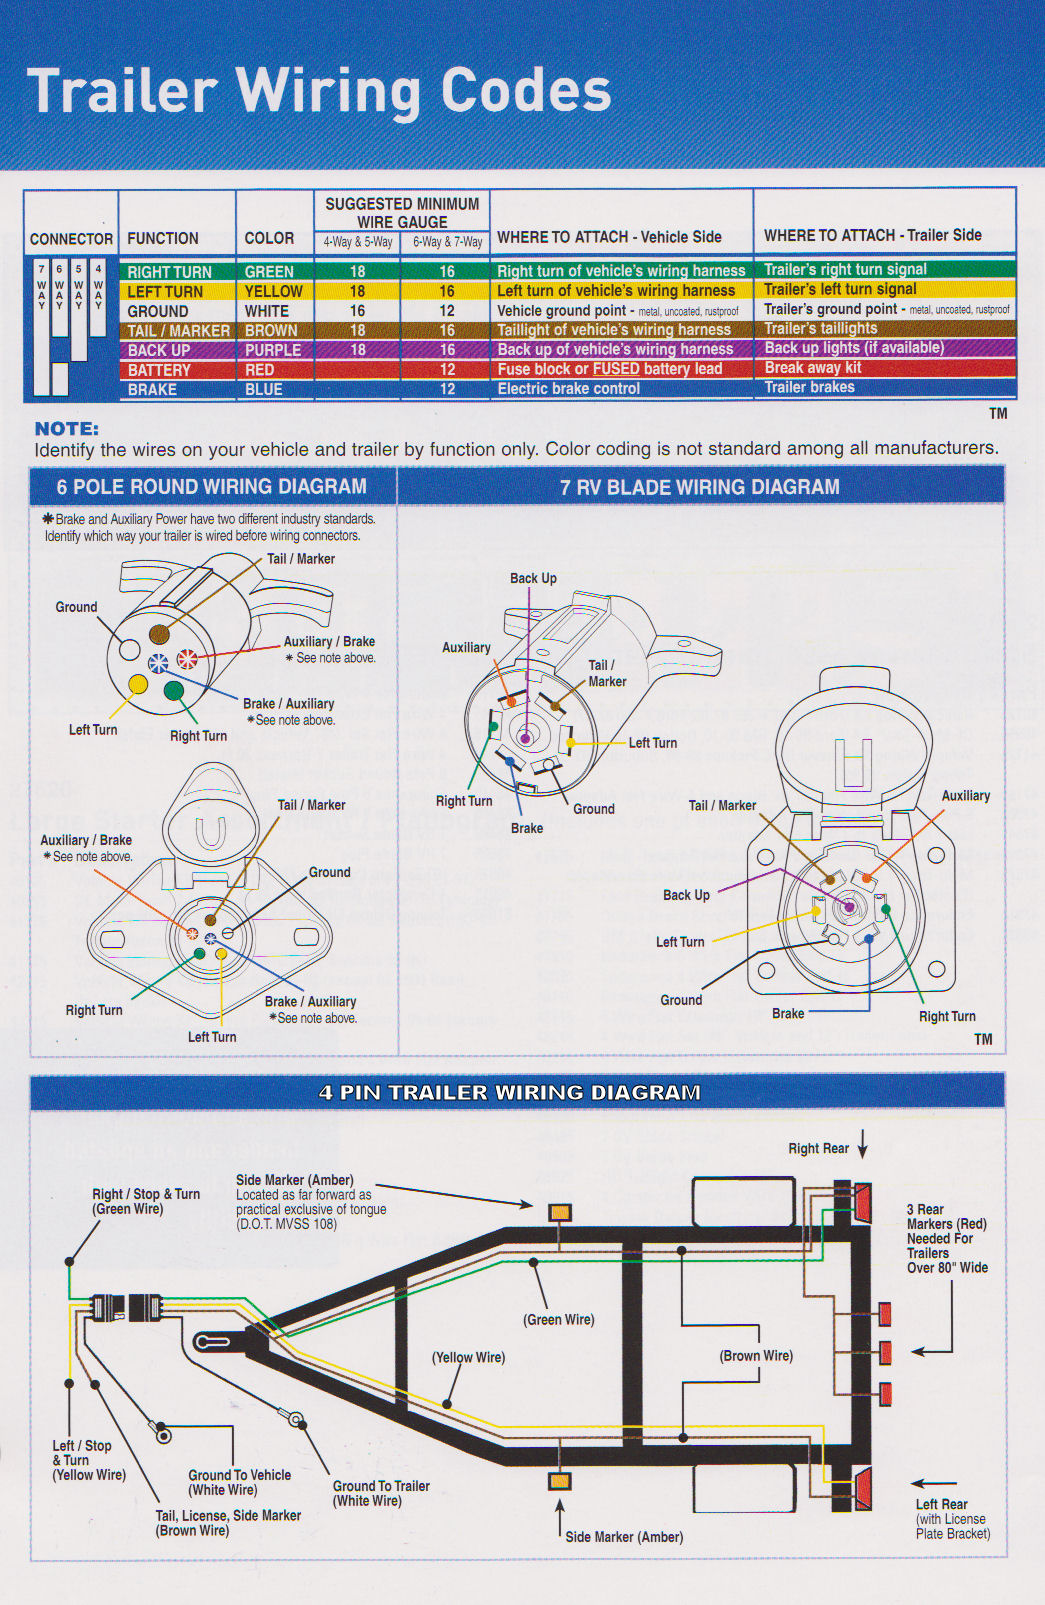 Cargo Trailer Wiring Diagram Wiring Diagram Sys